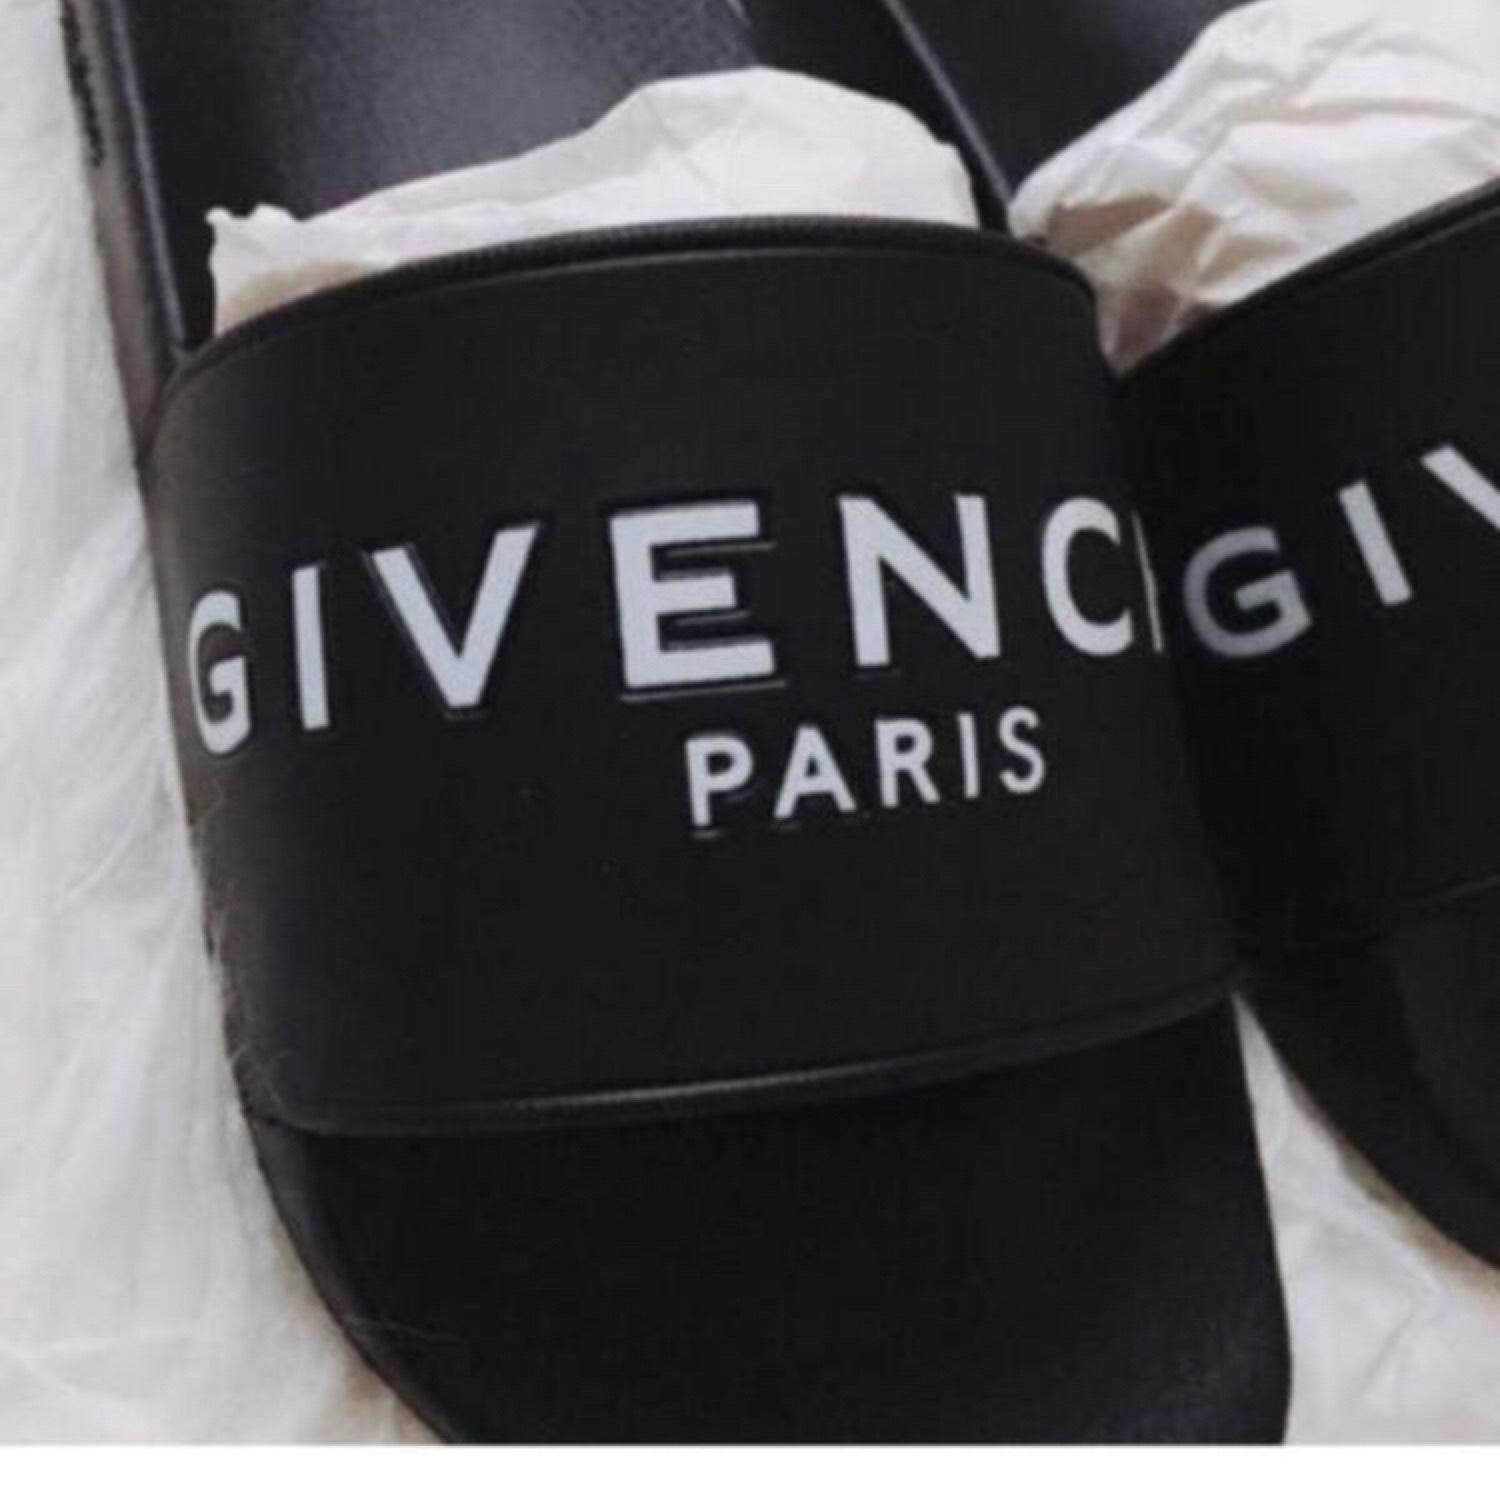 eca965a1b679 ... Man s Woman s:Givenchy Logo Logo Logo Printed Rubber Slides Sandals  Size US 6 Regular ...